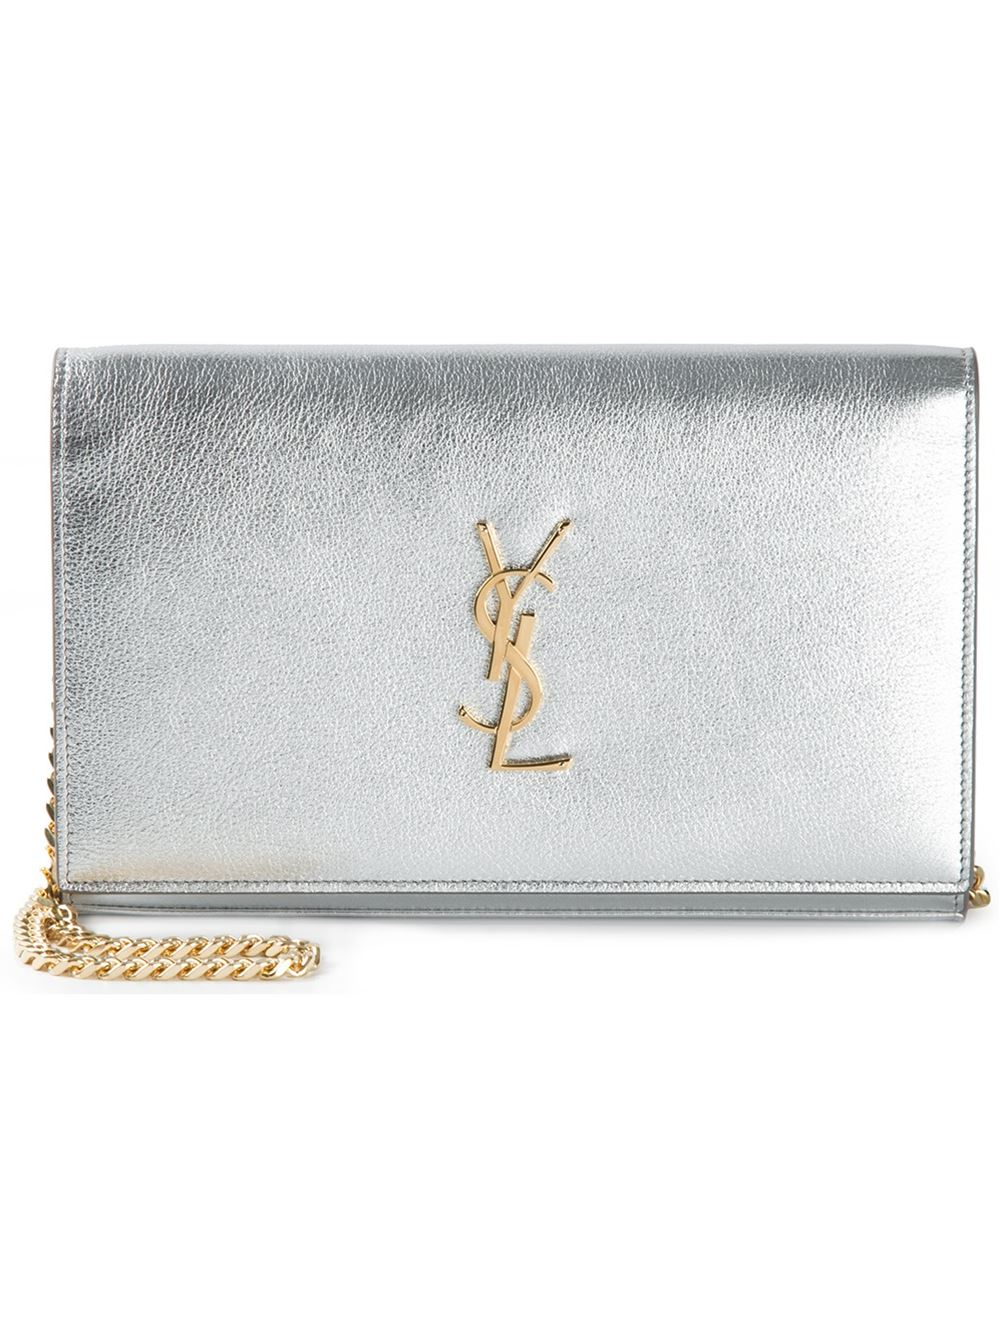 yves saint lauren clutch - monogram metallic leather crossbody bag, silver